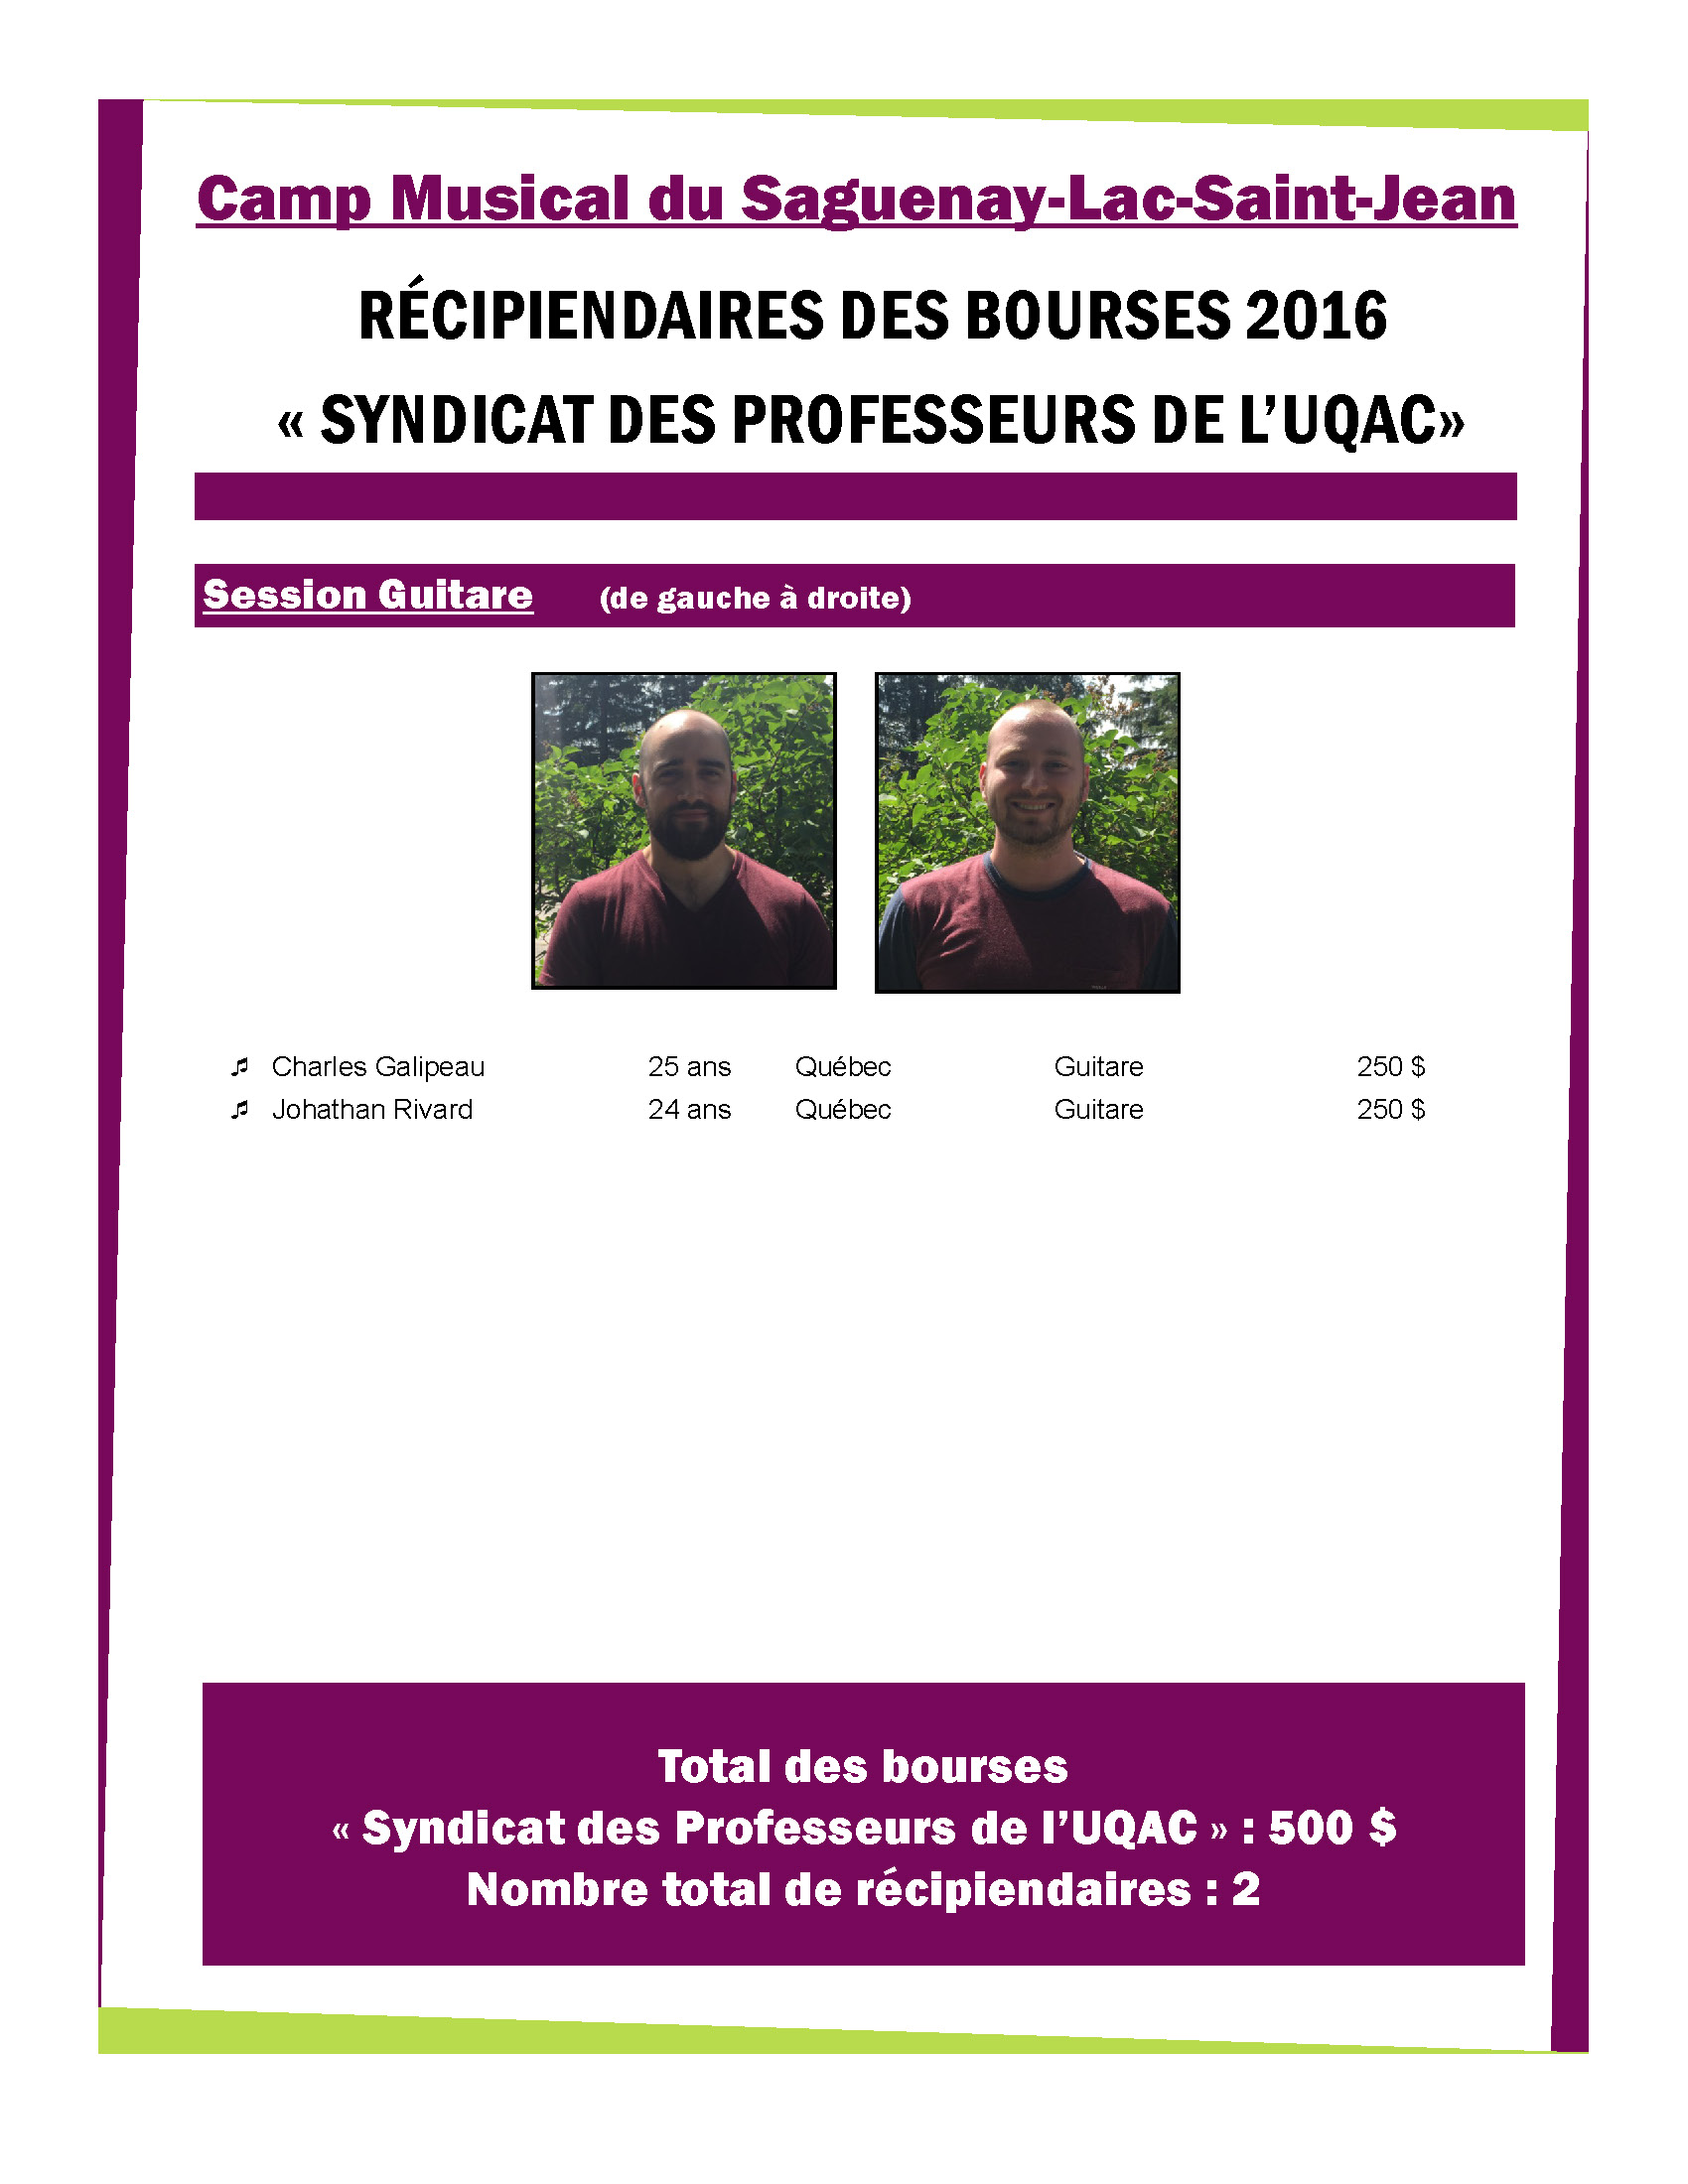 Bourse Camp Musical du Saguenay-Lac-Saint-Jean 2015-2016